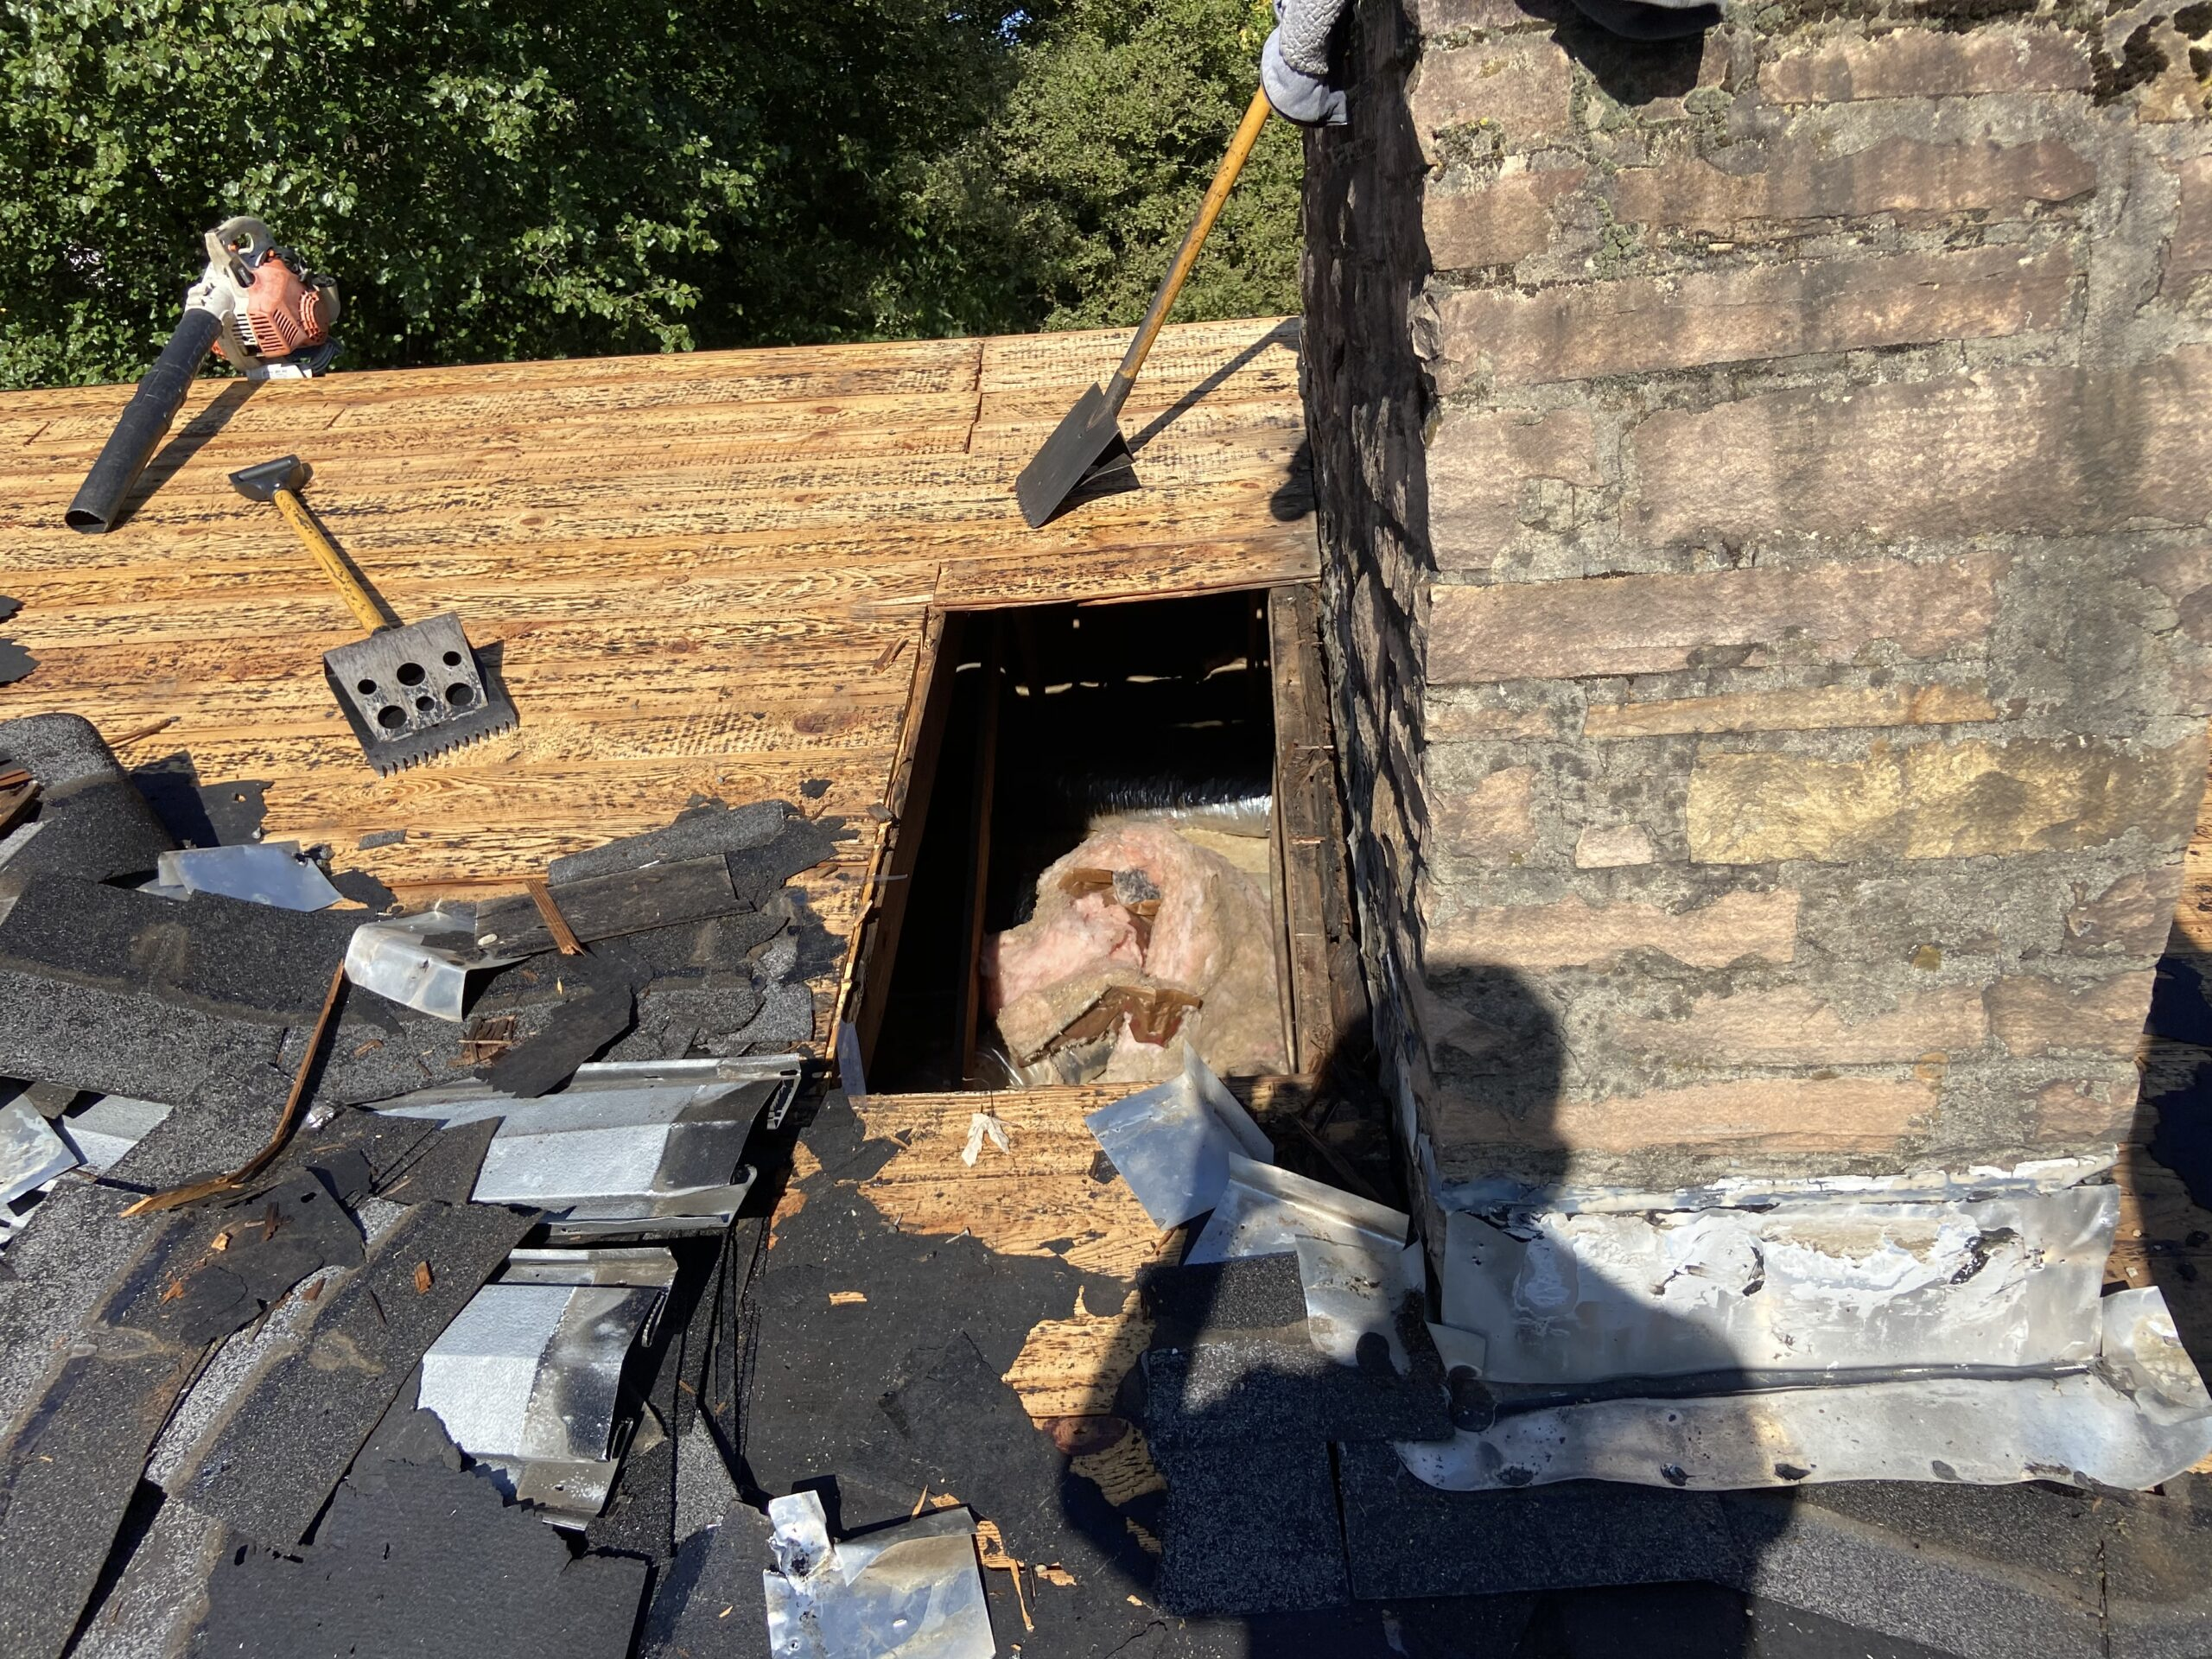 There's a picture of a hole in a roof near plywood chimney